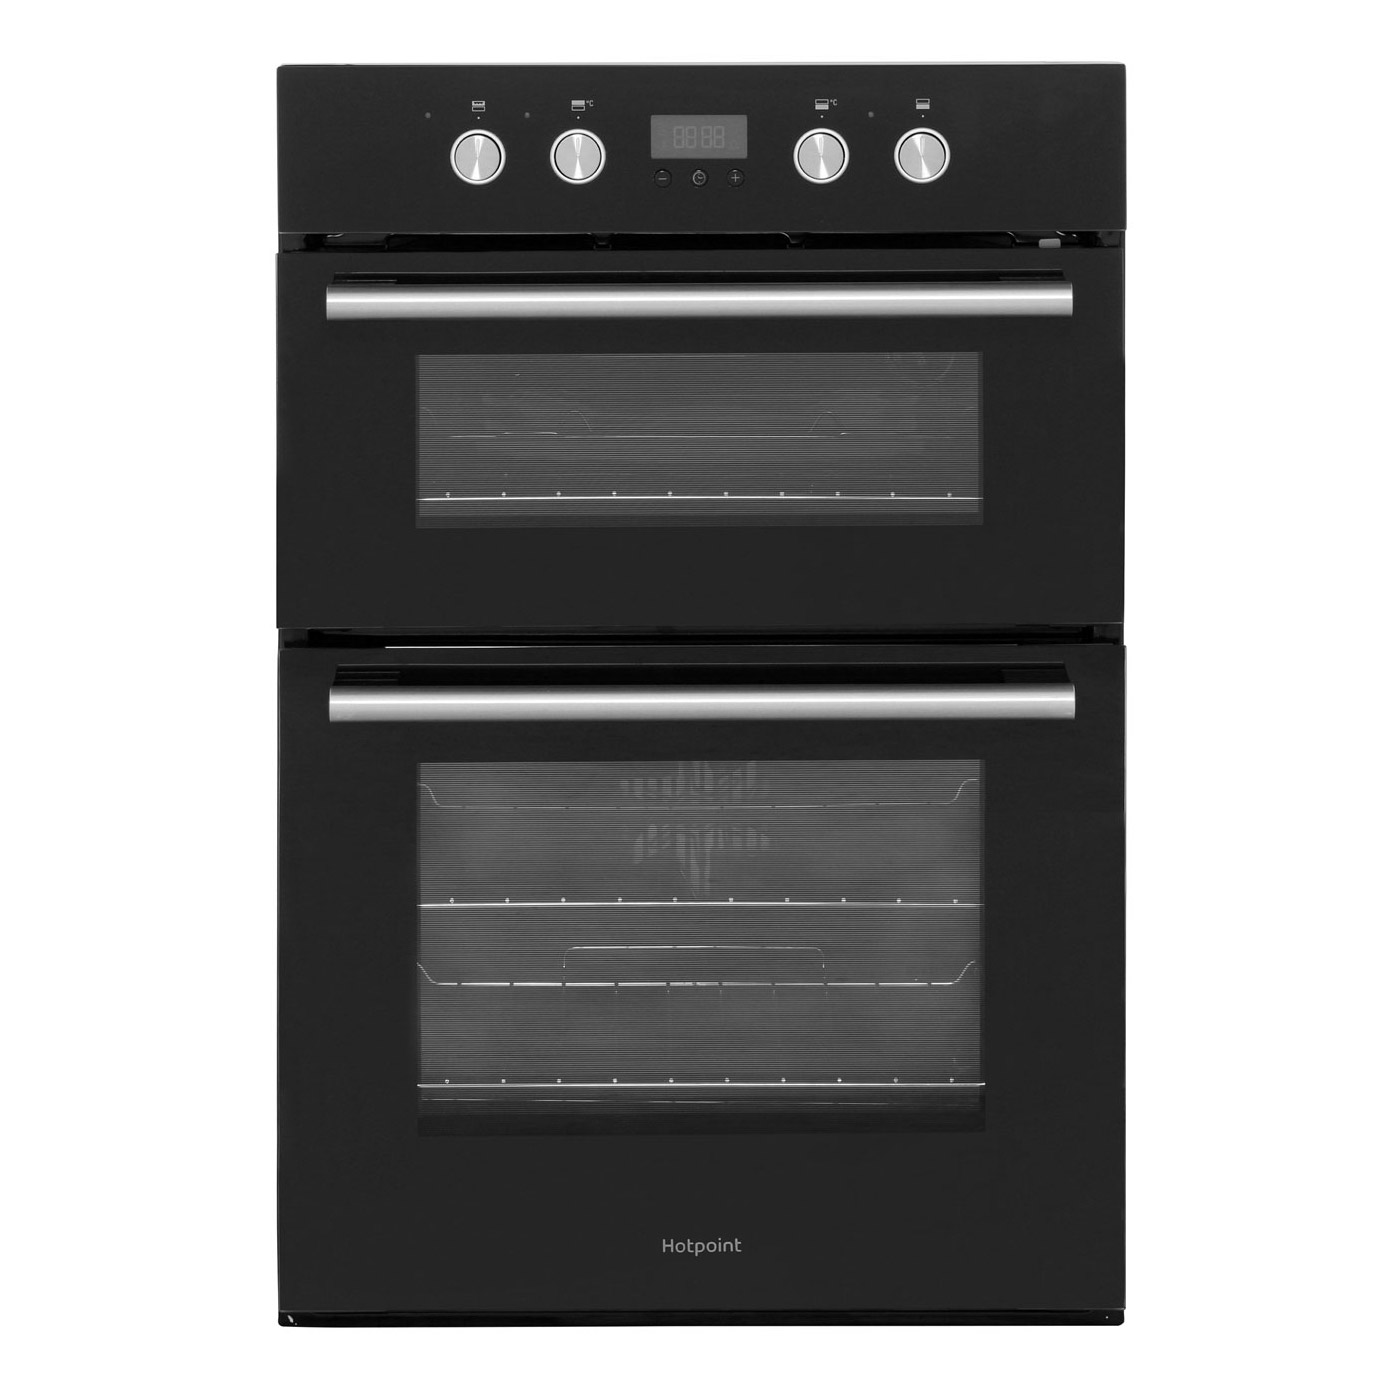 Hotpoint Dd2844cbl Built In Electric Double Oven In Black